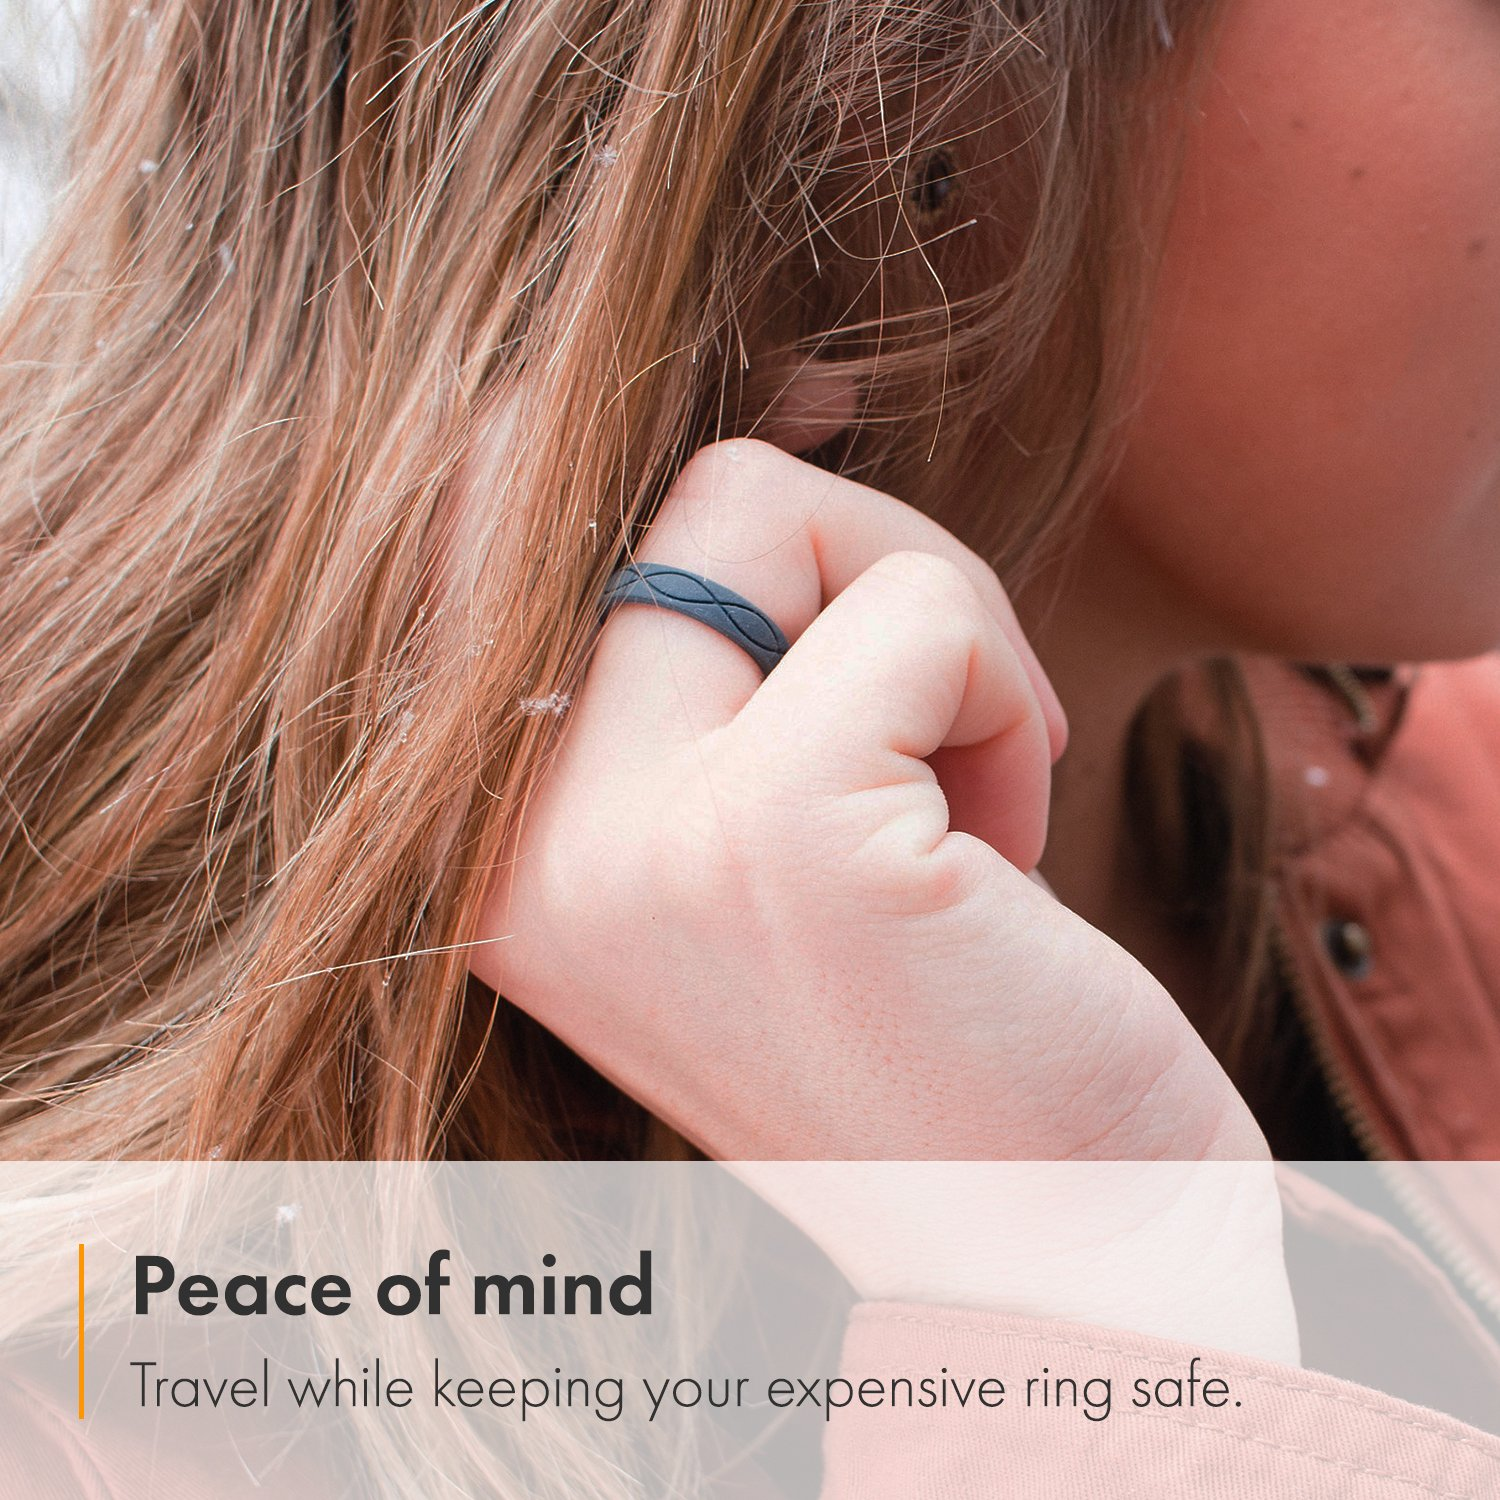 Enso Womens Infinity Silicone Ring, Slate Blue 5 by Enso Rings (Image #1)